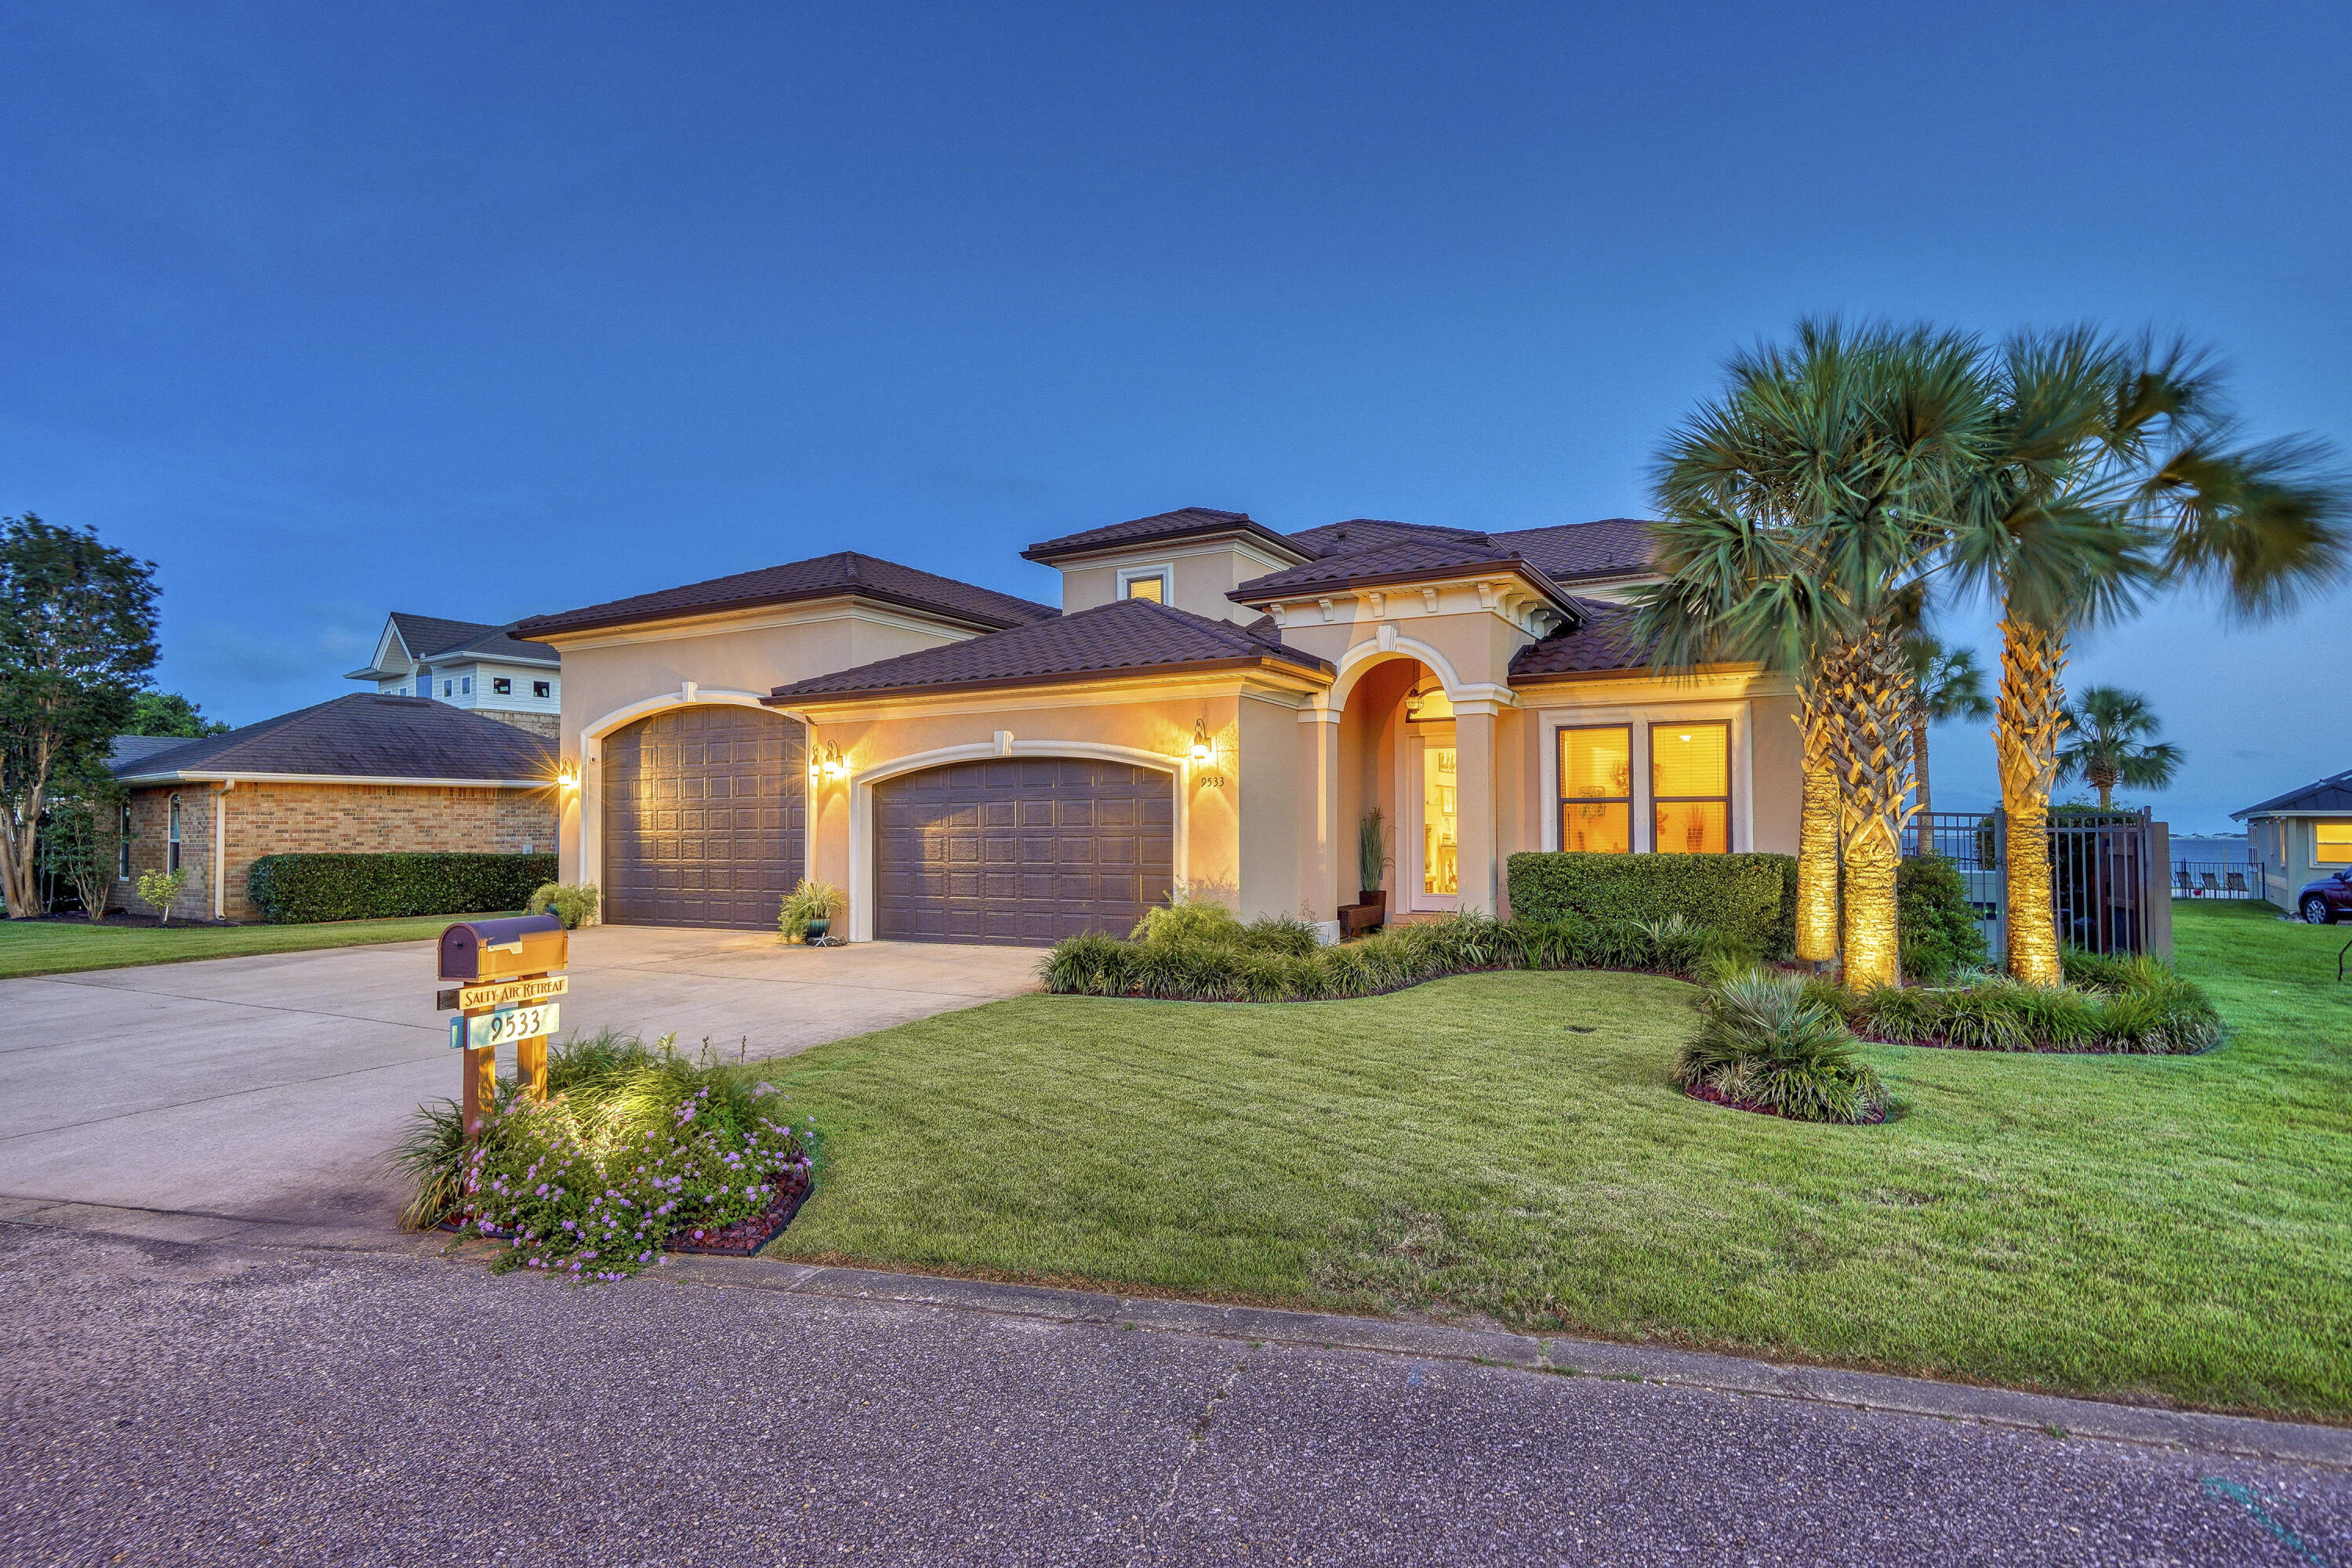 AMAZING WATERFRONT 2016 Custom Home with 4 Bedrooms, 2.5 Bathrooms, Office, Loft Area, and Bonus Room. Huge .61 Acre Sound Front Lot with 115 Feet of Prime Santa Rosa Sound Water Frontage, Boasting 3126 Sq Ft of Heated & Cooled Living Space and a Total Space Under the Roof of 5568 Sq Ft! This Incredible Home is Equipped with a 3 Car Garage AND an Almost 1K Sq Ft RV/Boat Garage with 16 Ft Ceilings AND is Located in FLOOD ZONE X, AND has a Whole Home Generator! Relax in the Back Yard Oasis Outfitted with a Large In-Ground GUNITE Pool, Deck, and Fountain, Ample Yard Space, and Jawdropping Water Views. Ever Dreamed of Having Everything you Want in a Home AND be on the Water? THIS IS IT! Upon Entering this Gorgeous and Immaculately Maintained Home, Notice the Fine Details Throughout.. More... such as Beautiful Wood-Look Tile Flooring, Crown Molding, Recessed Lighting, 10 Ft Smooth Ceilings, 8 Ft Doors, Modern Finishes, Fixtures, and Hardware, Open Floorplan with Tons of Natural Light and TREMENDOUS Water Views!  Step into the Kitchen and Find Plenty of Counterspace and Beautiful Cabinetry, Pantry, Thick & Gorgeous Quartzite Countertops, with Quartzite Topped Island, and Modern Conveniences such as Touch Kitchen Faucet.  The 1st Floor has a Dreamy Master Bedroom and Bathroom, both with Incredible Water Views and Tons of Natural Light. Inside the Master Bedroom are Tray Ceilings, Recessed Lighting, and Private Doors to the Back Deck & Pool. The Master Bath is Stunning, with Separate Stone Vanities, Large Walk-in Glass Shower, and Soaker Tub that Looks out to the Sound. The 2nd Floor has Three Bedrooms with a Loft Large Enough for a Second Living Room, as well as a Bonus Room. The Two South Rooms as well as Second Floor Deck have Incredible Panoramic Water Views. The Deck and Railing Material are Tile and Aluminum for Lower Maintenance Waterfront Living. Be Amazed as you Look over the Gorgeous Pool Oasis, the Large Back Yard, Sodded with Zoysia Grass, and Equipped with a Wi